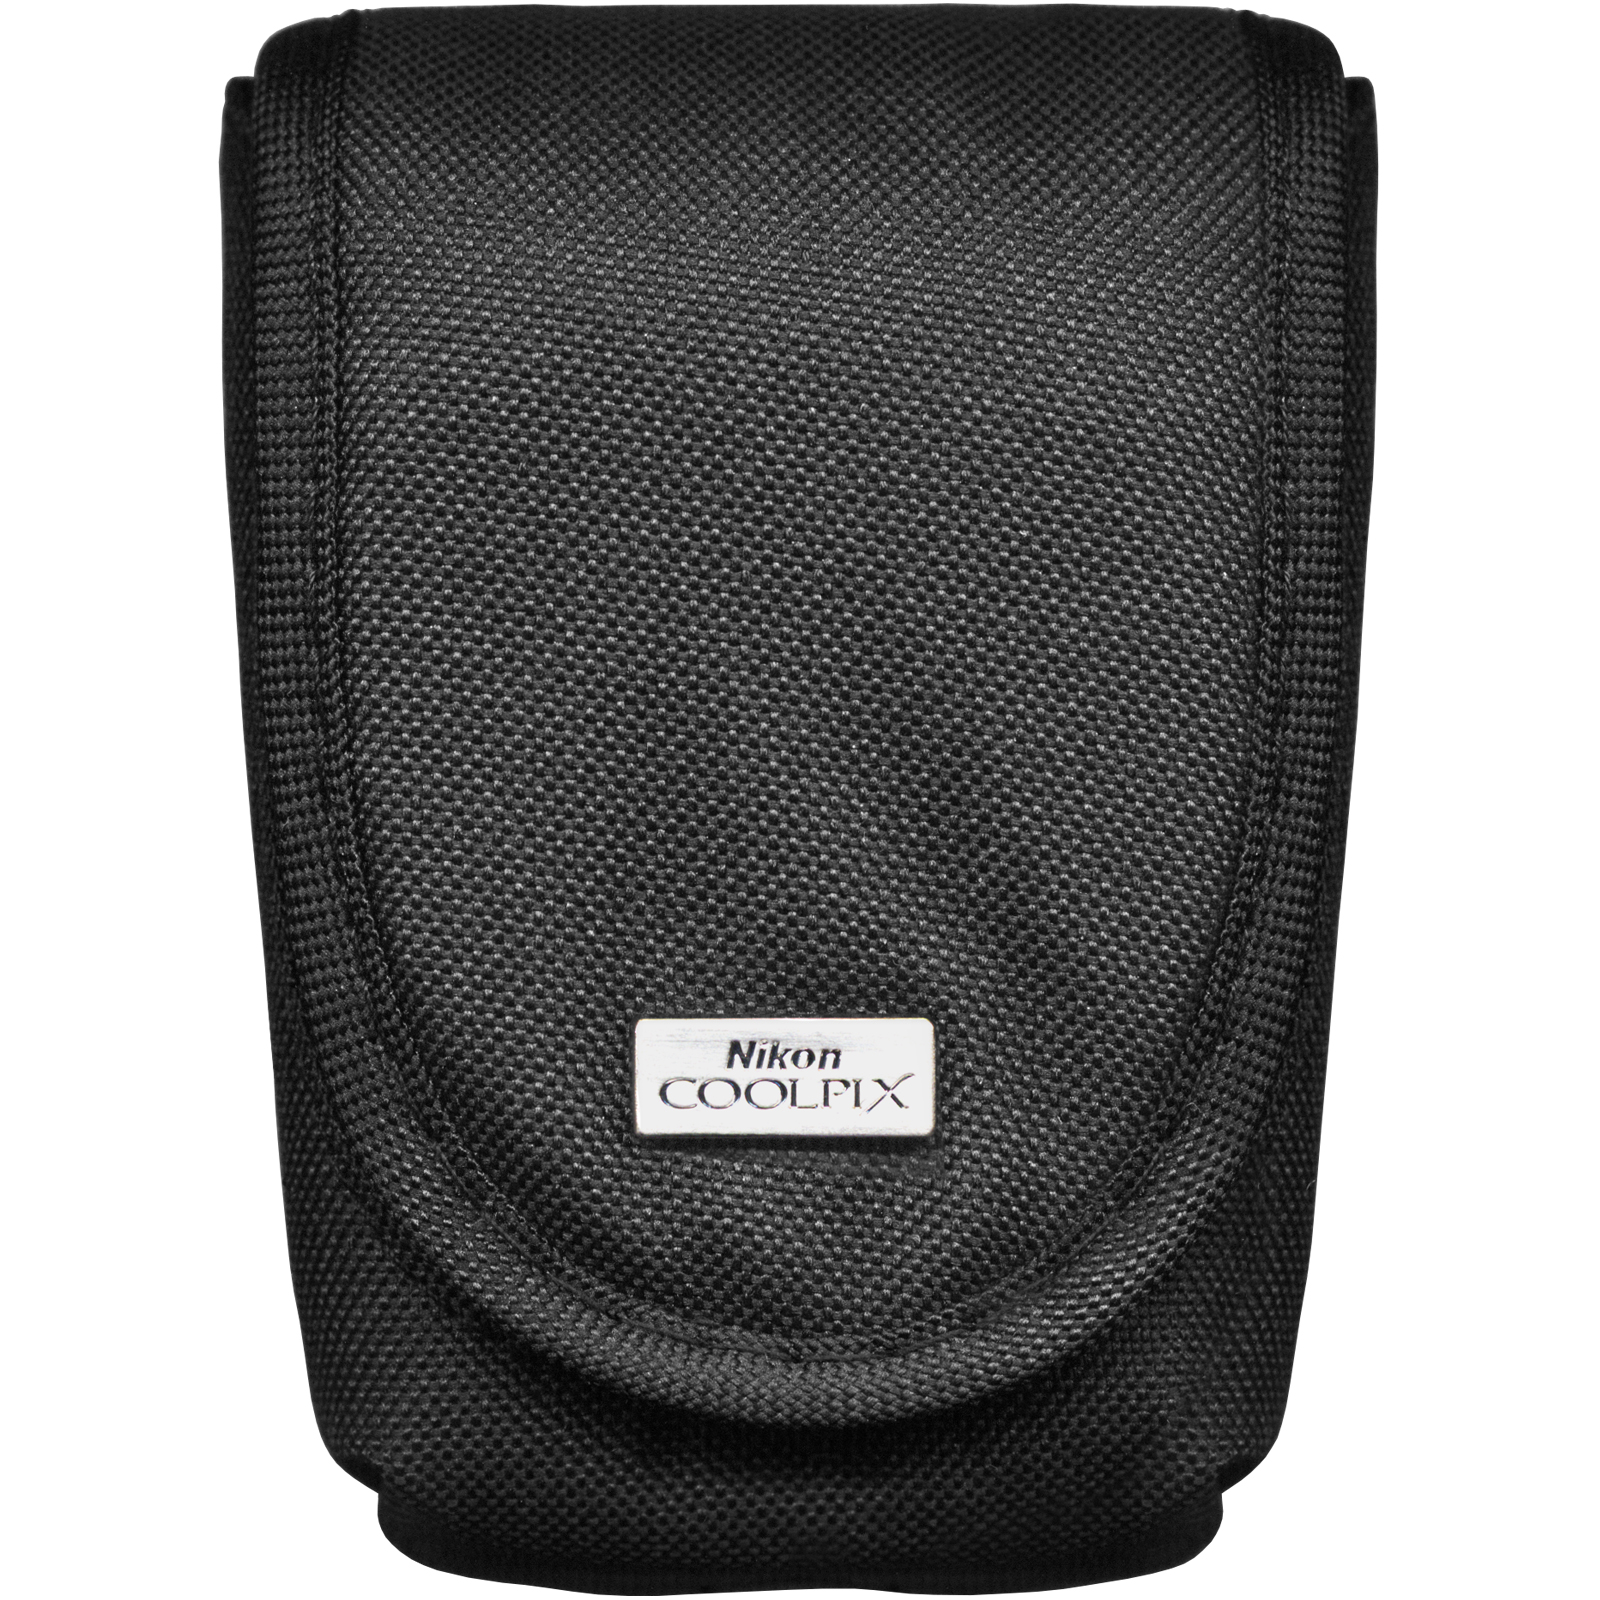 Nikon Coolpix 5879 Digital Camera Case